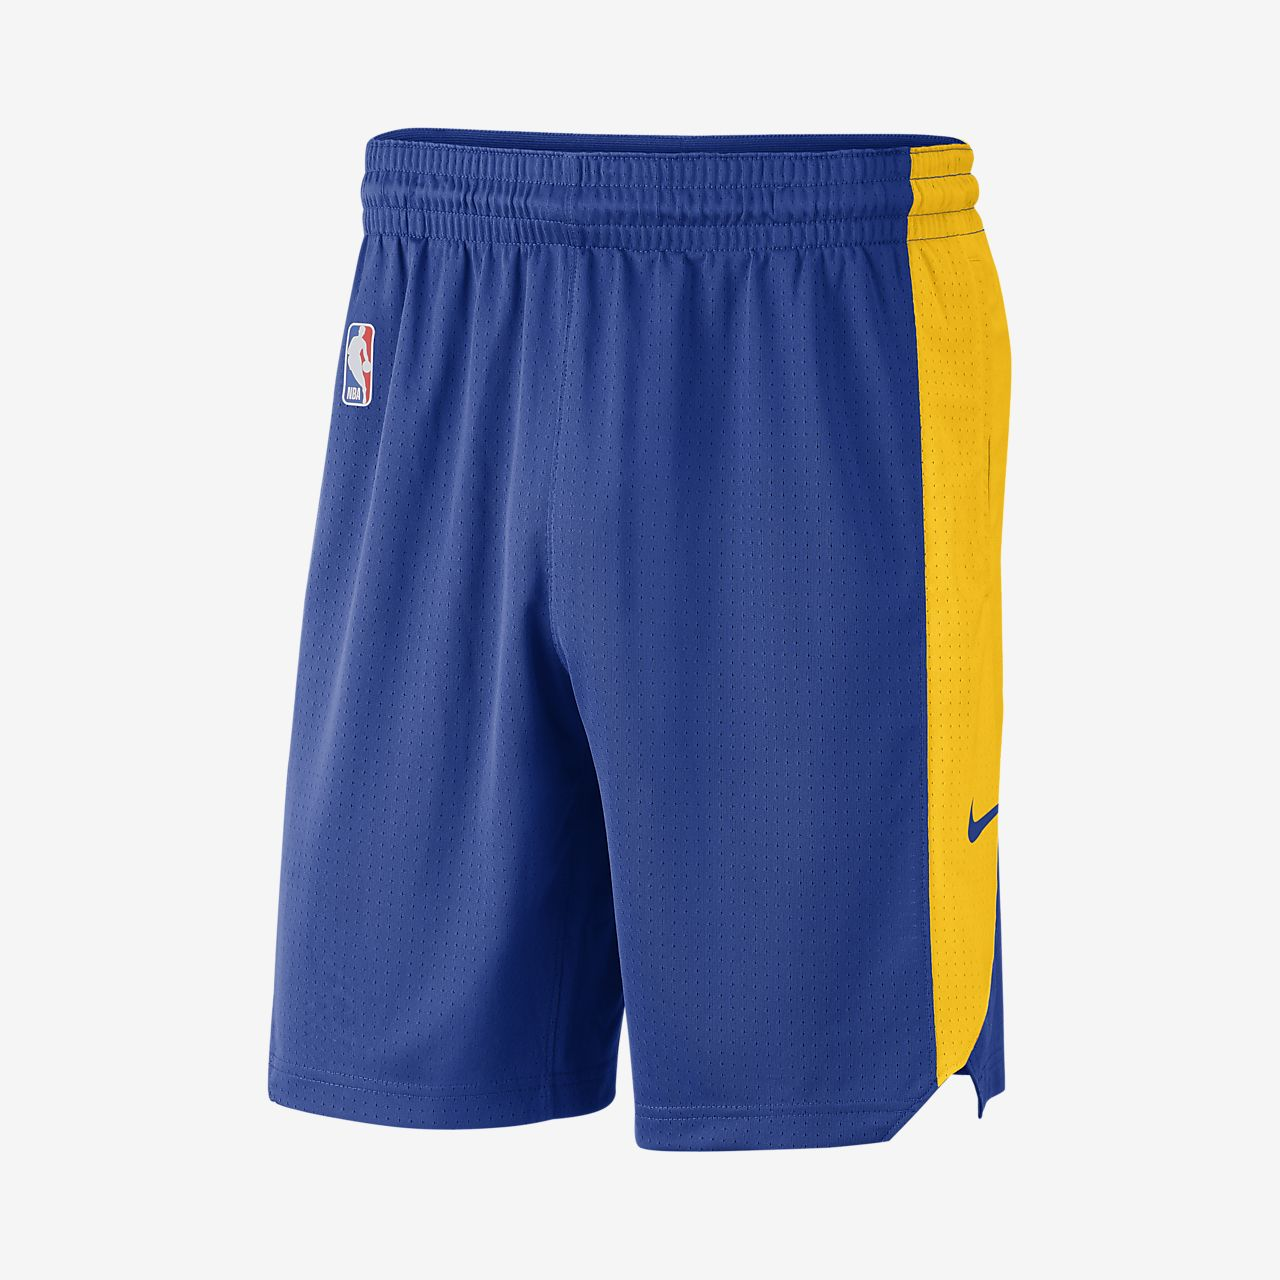 Shorts de práctica de la NBA para hombre Golden State Warriors Nike